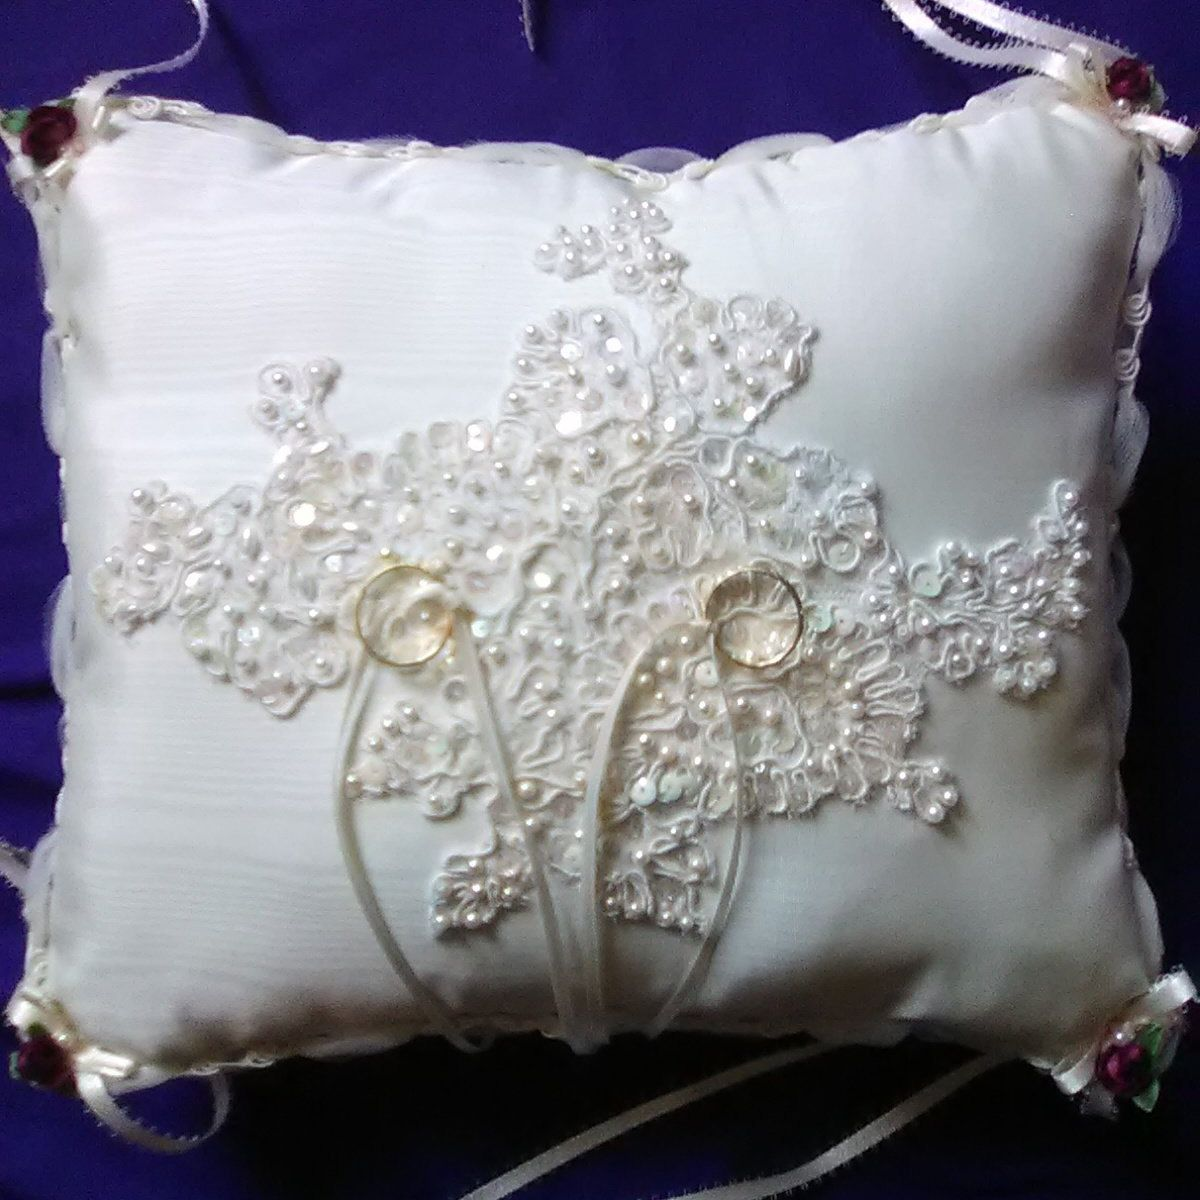 Couture Garters For Wedding: Bridal Couture Garters Ring Pillows Bridal Purses